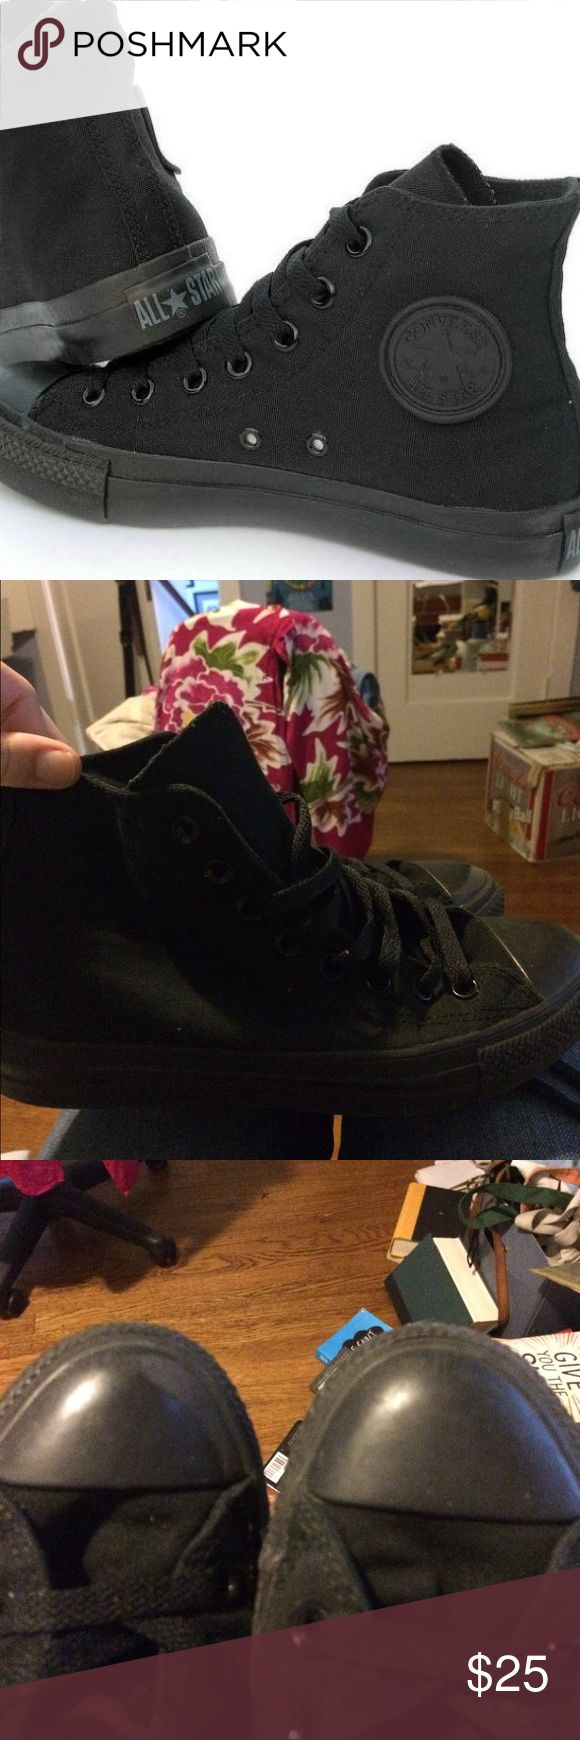 Classic All Black Chuck Taylor's Original all black converse high tops. Barely worn and in perfect shape. Feel free to make offers :) Converse Shoes Sneakers